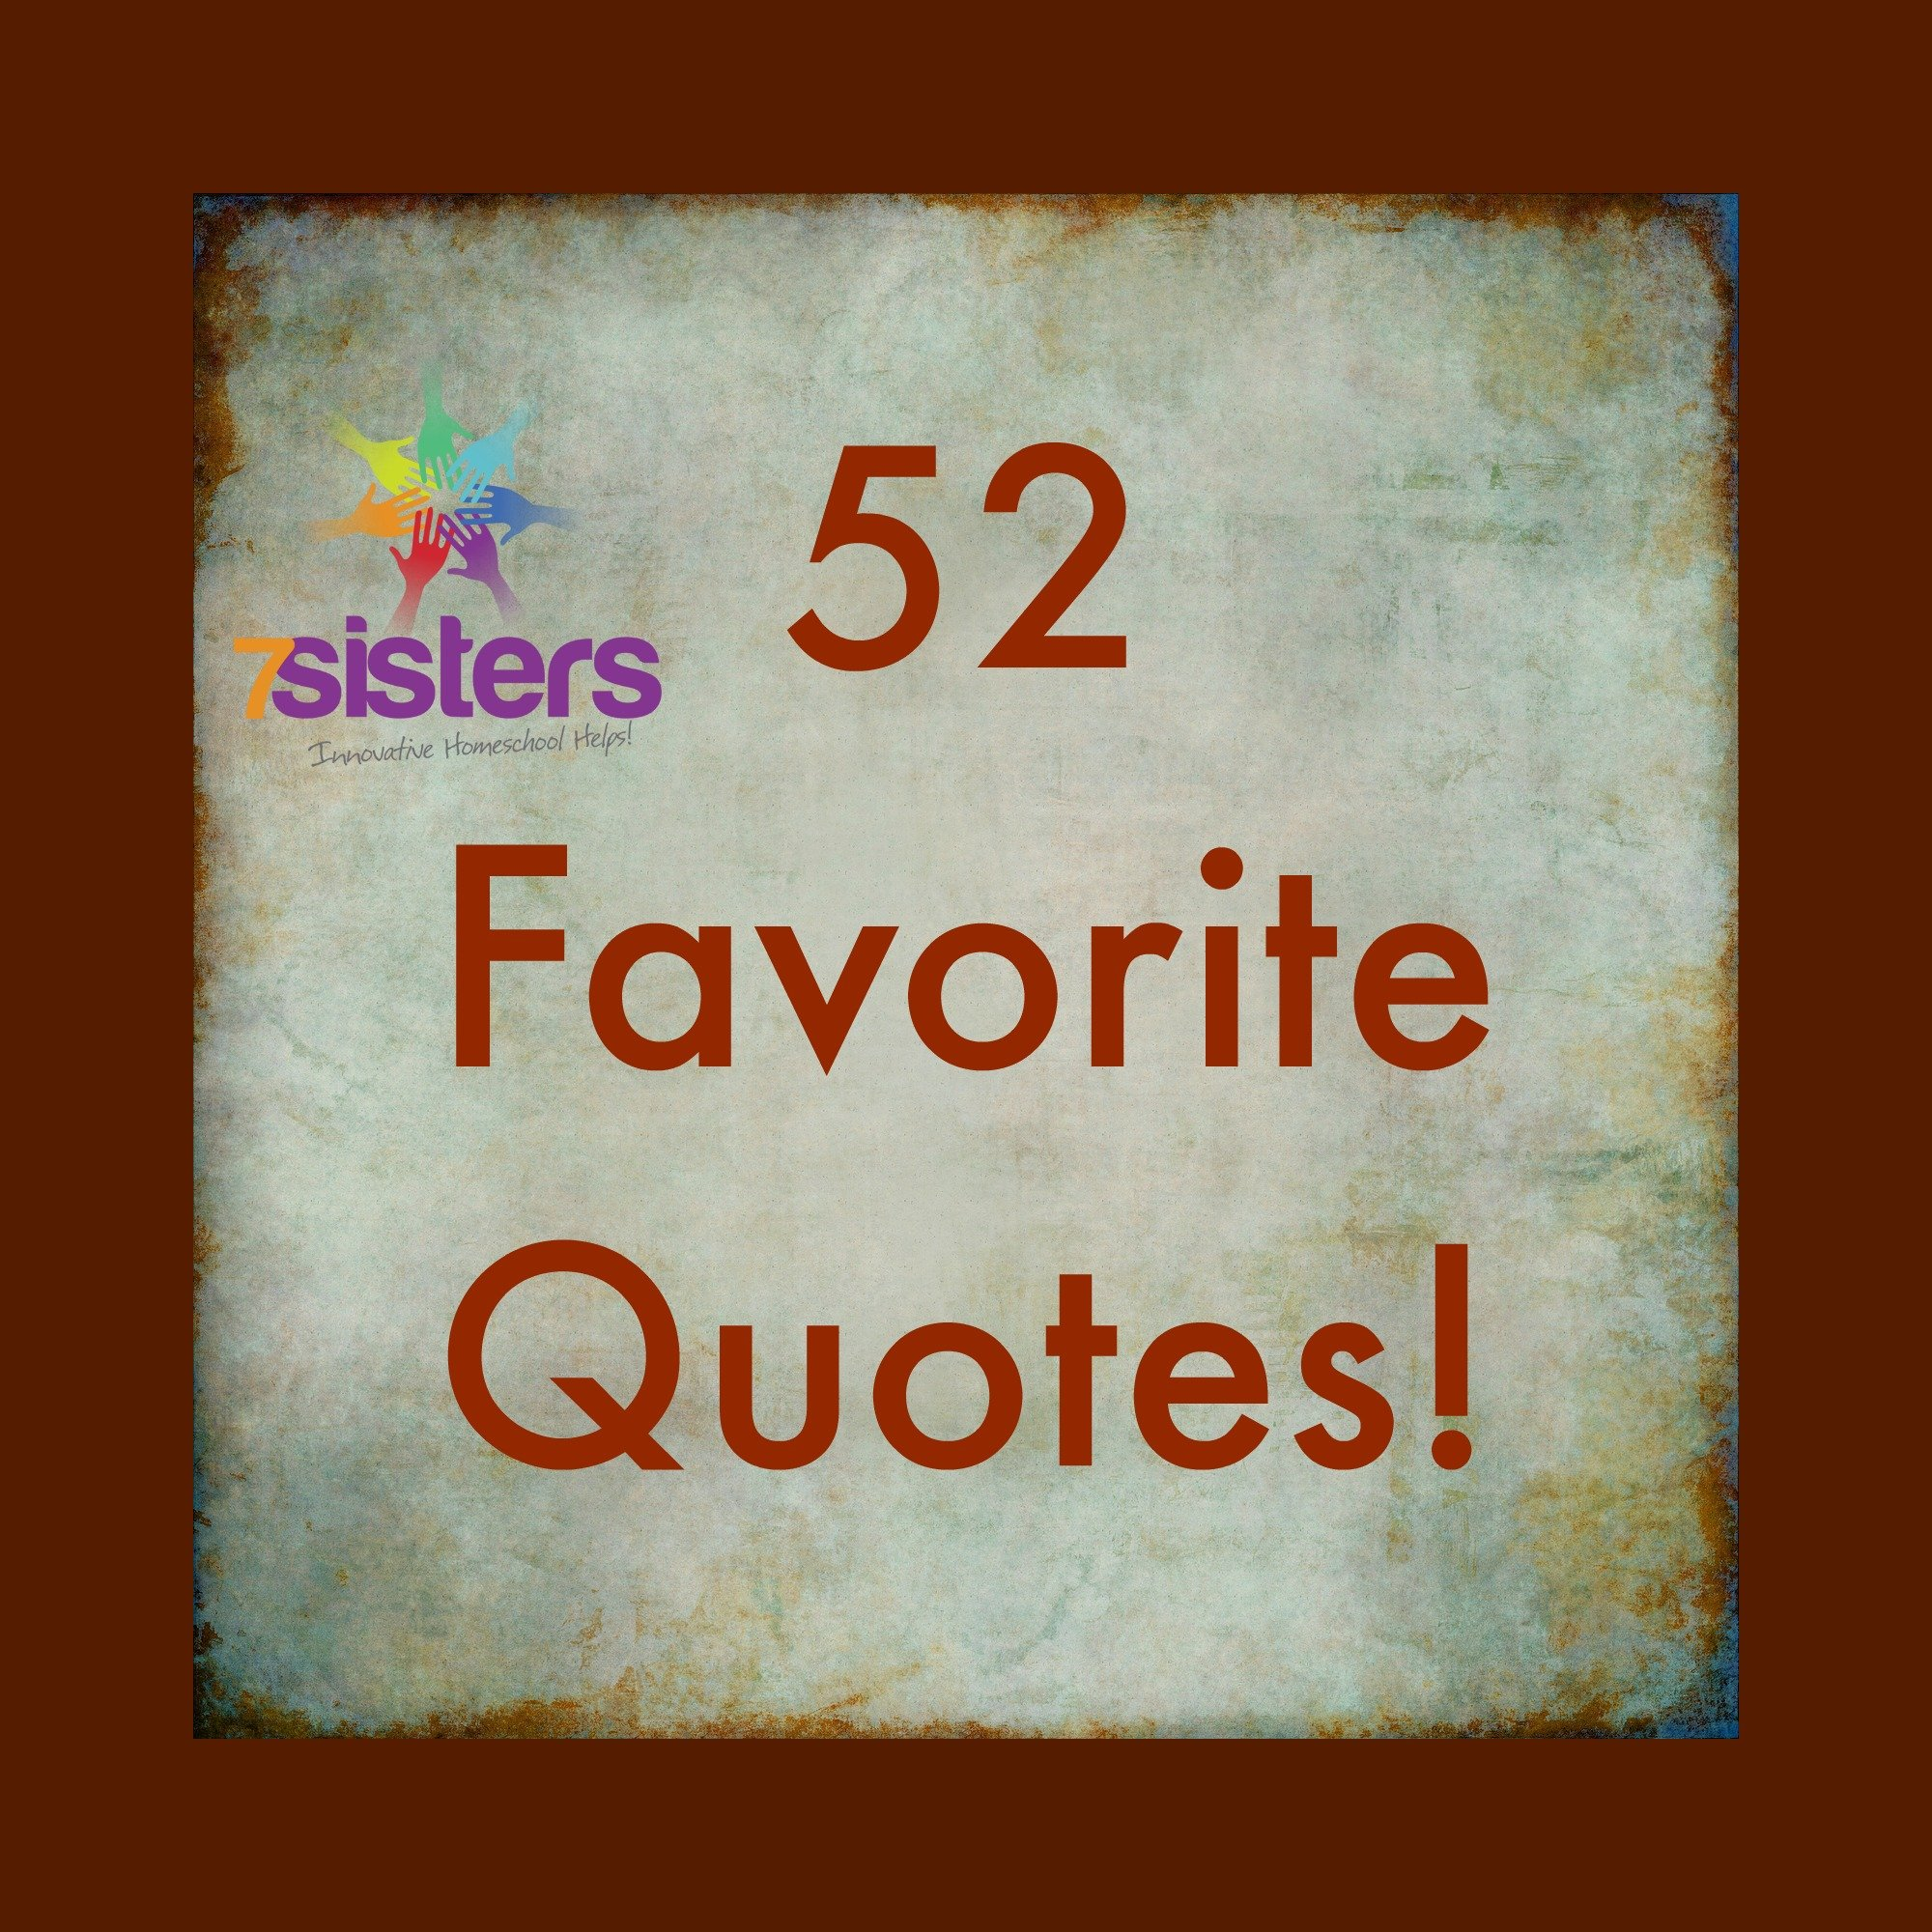 52 Favorite Quotes from 7SistersHomeschool.com